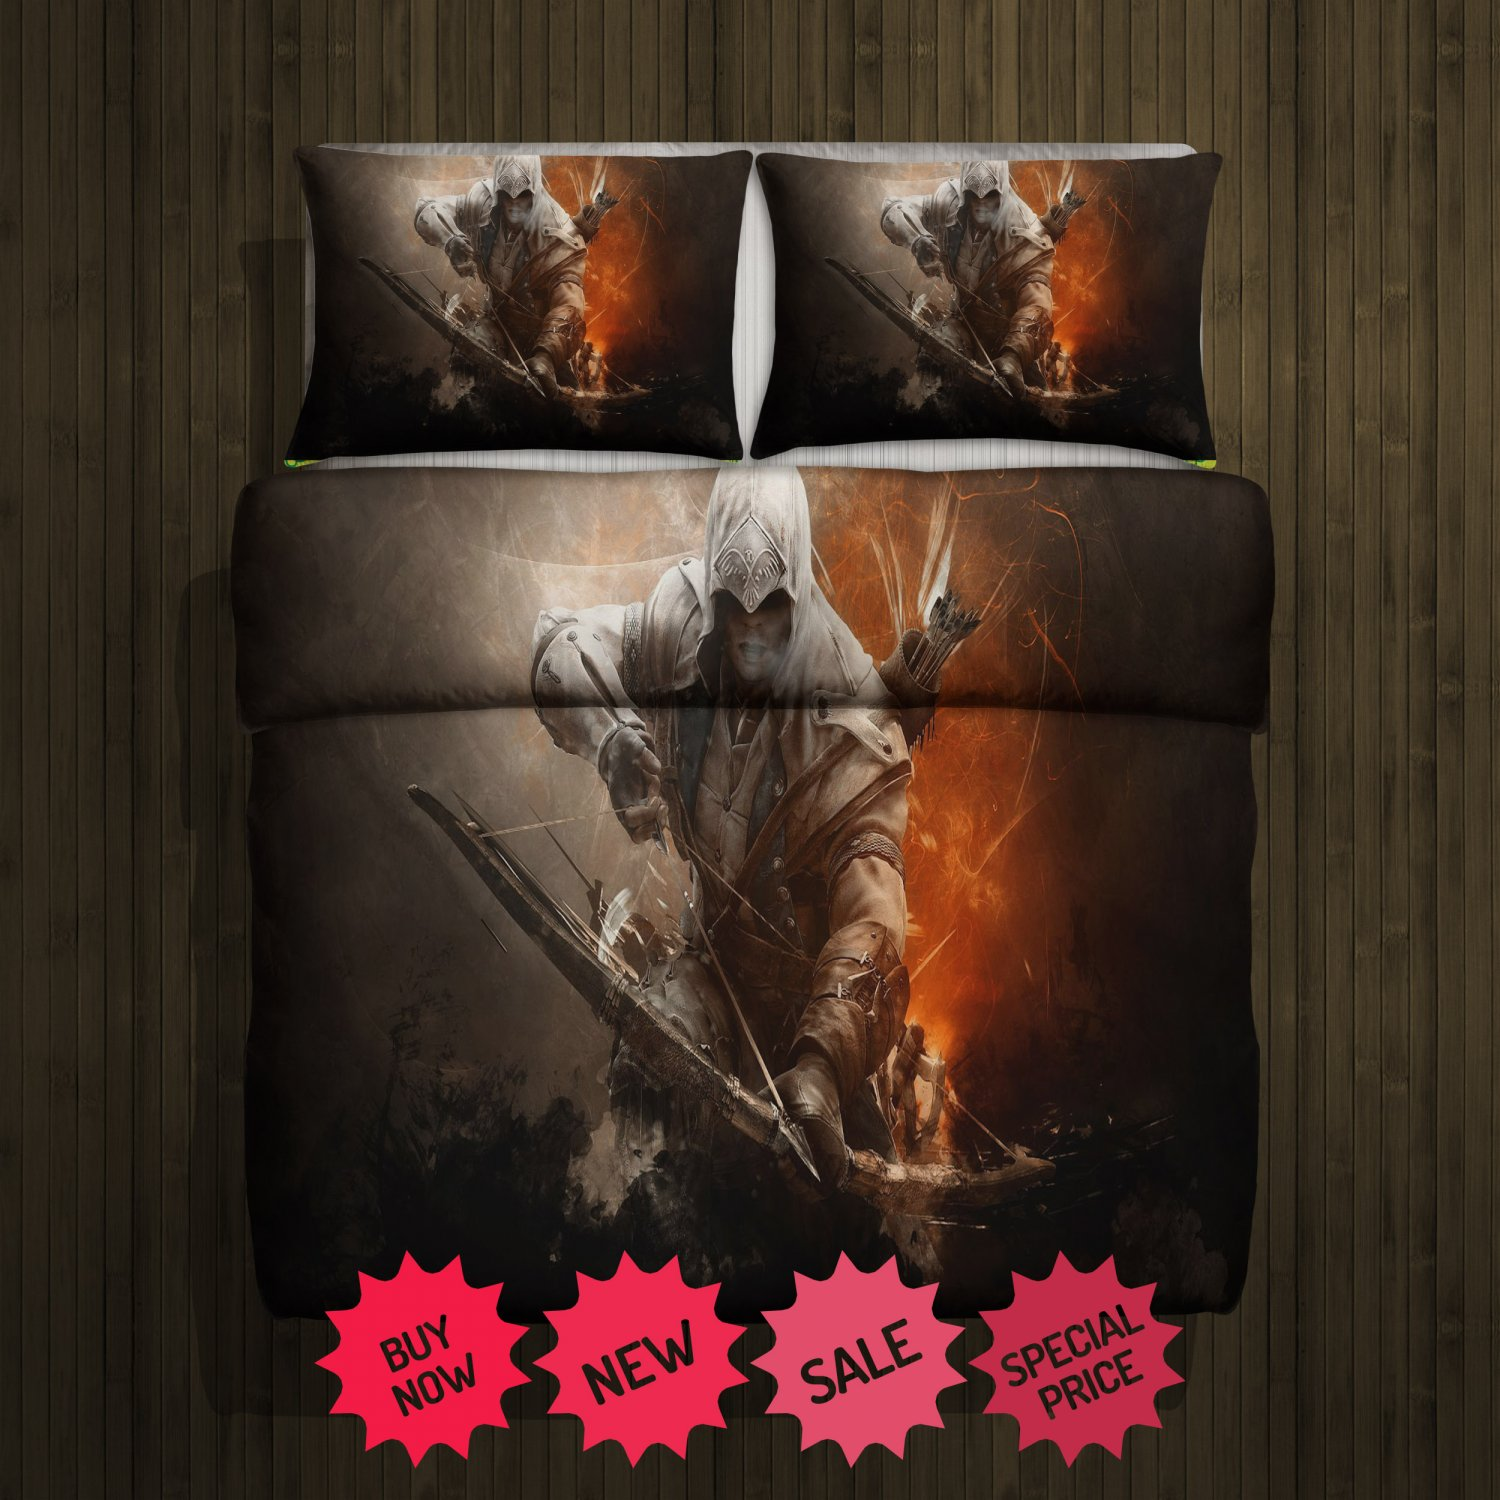 Assassins Creed 3 Blanket Large & 2 Pillow Cases #97363923,97363924(2)